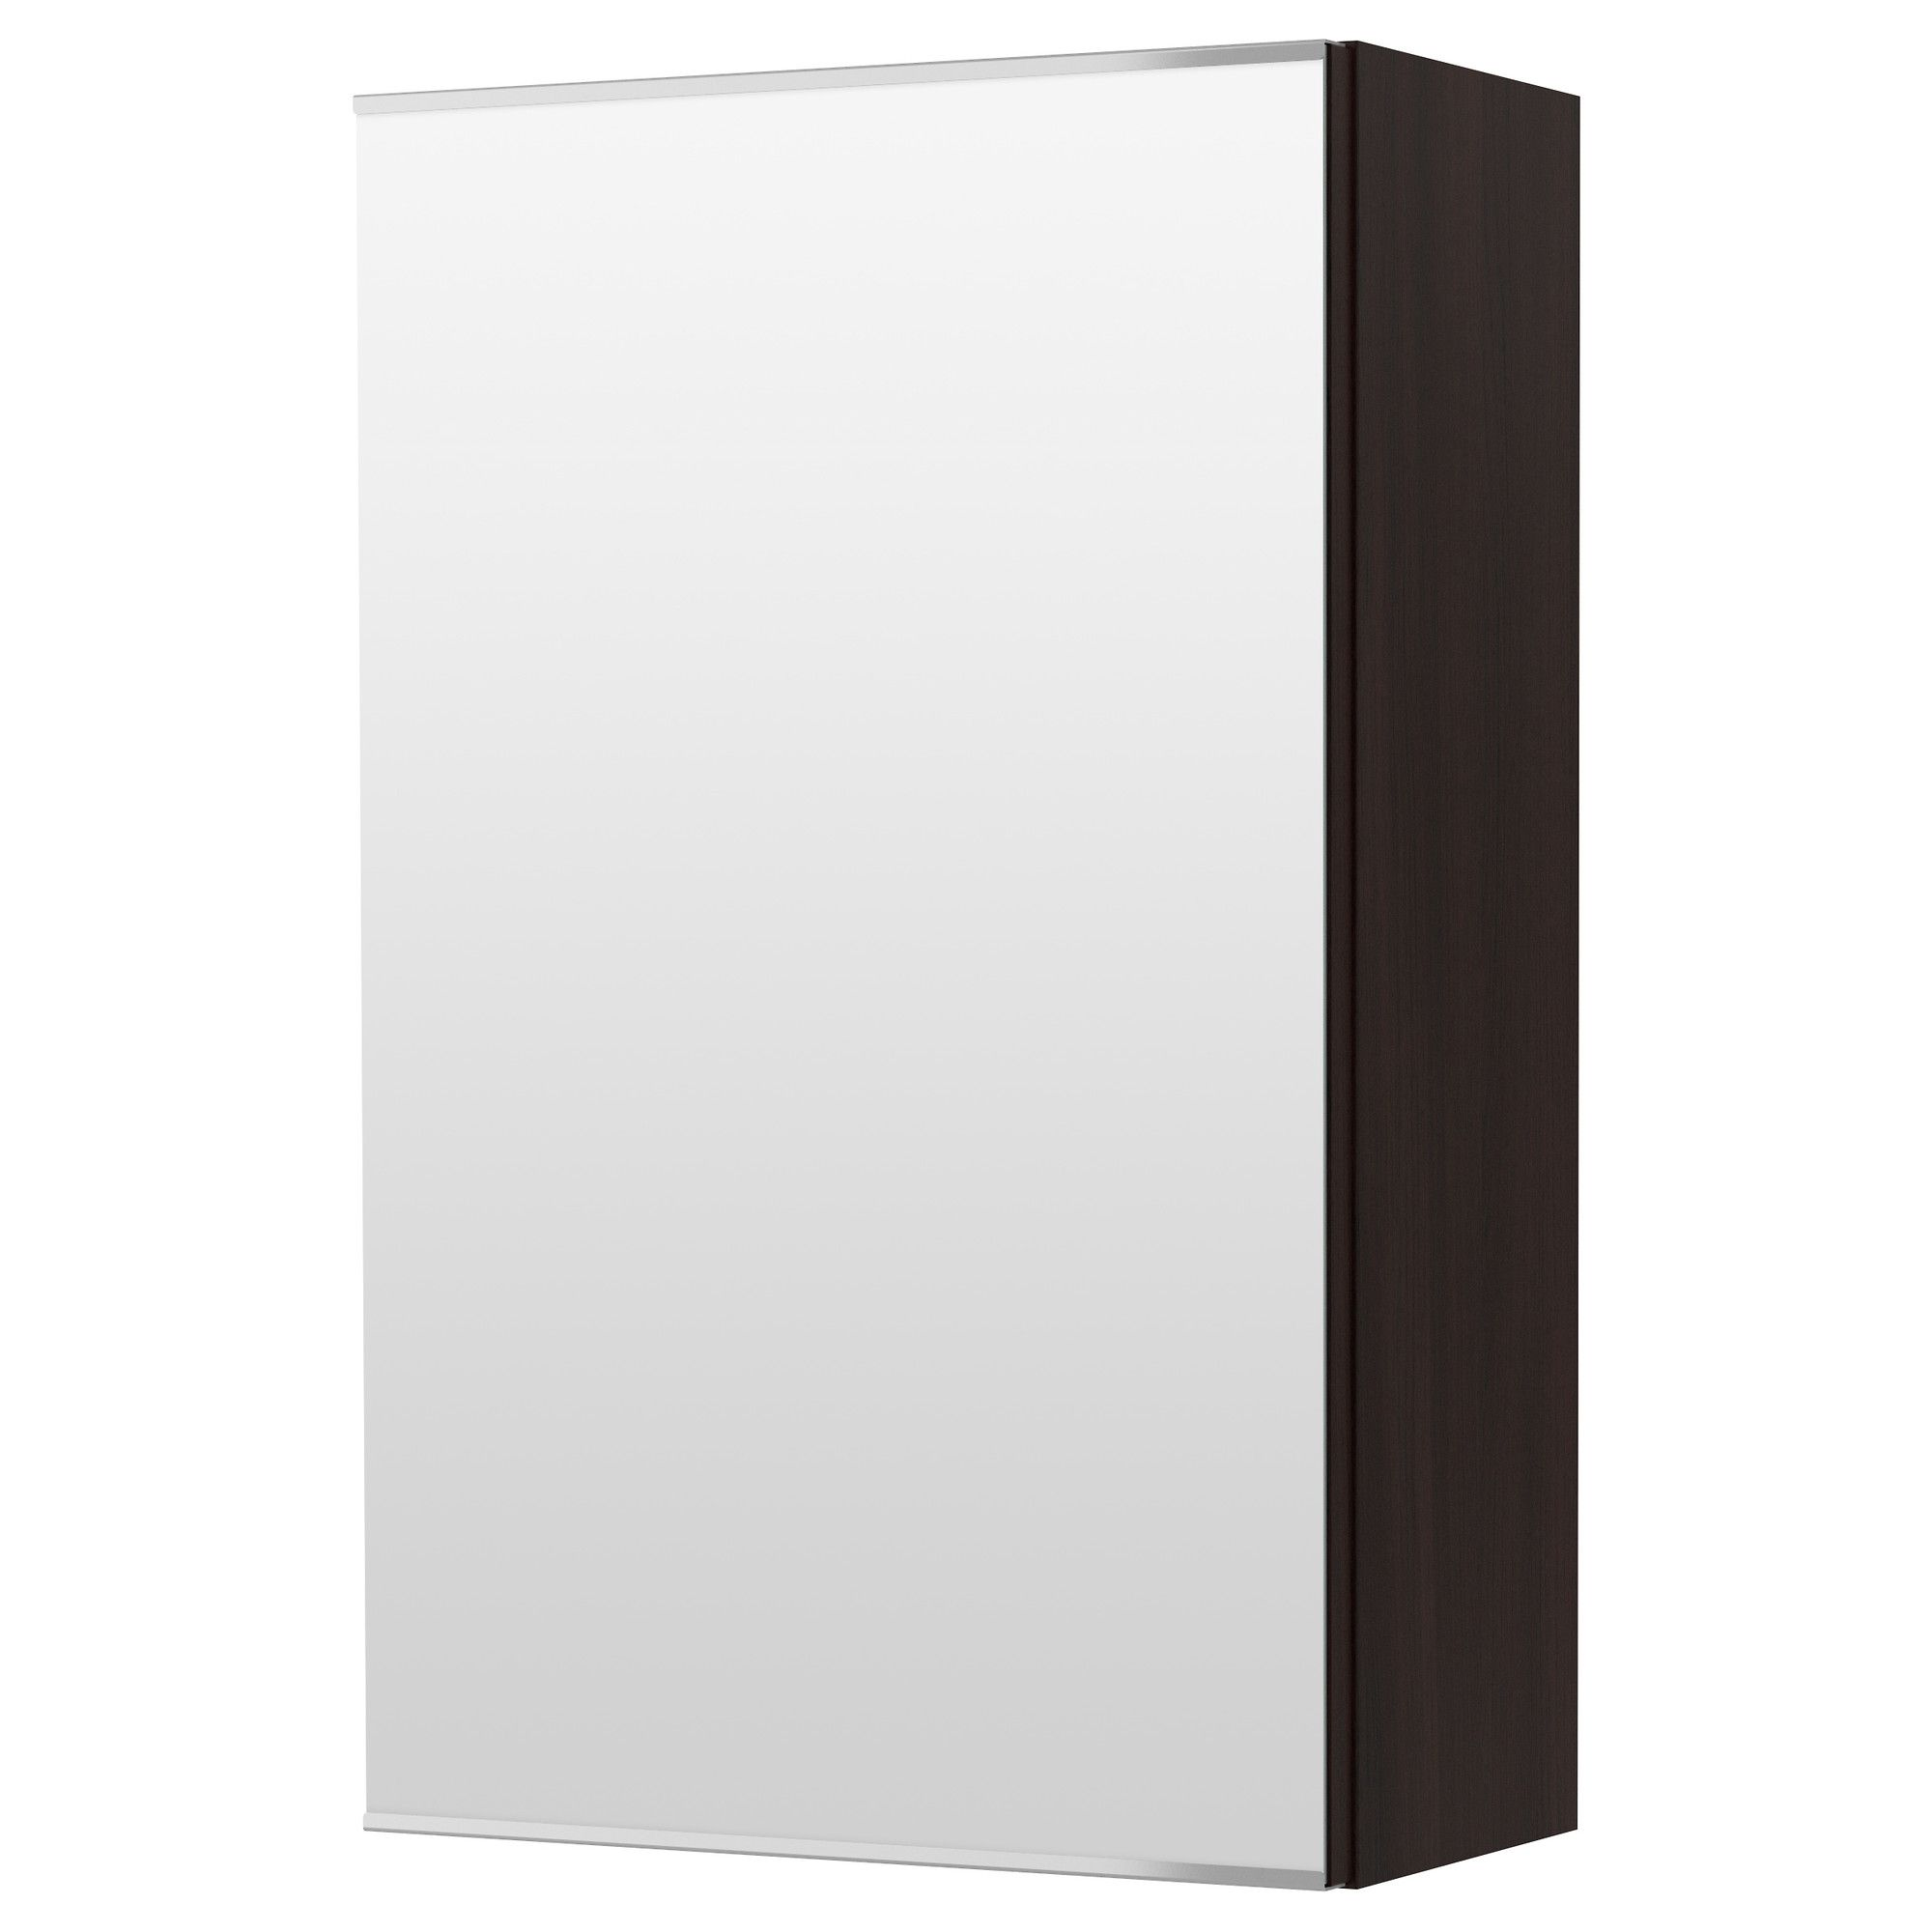 LILLÅNGEN Mirror Cabinet With 1 Door, Black-brown Black